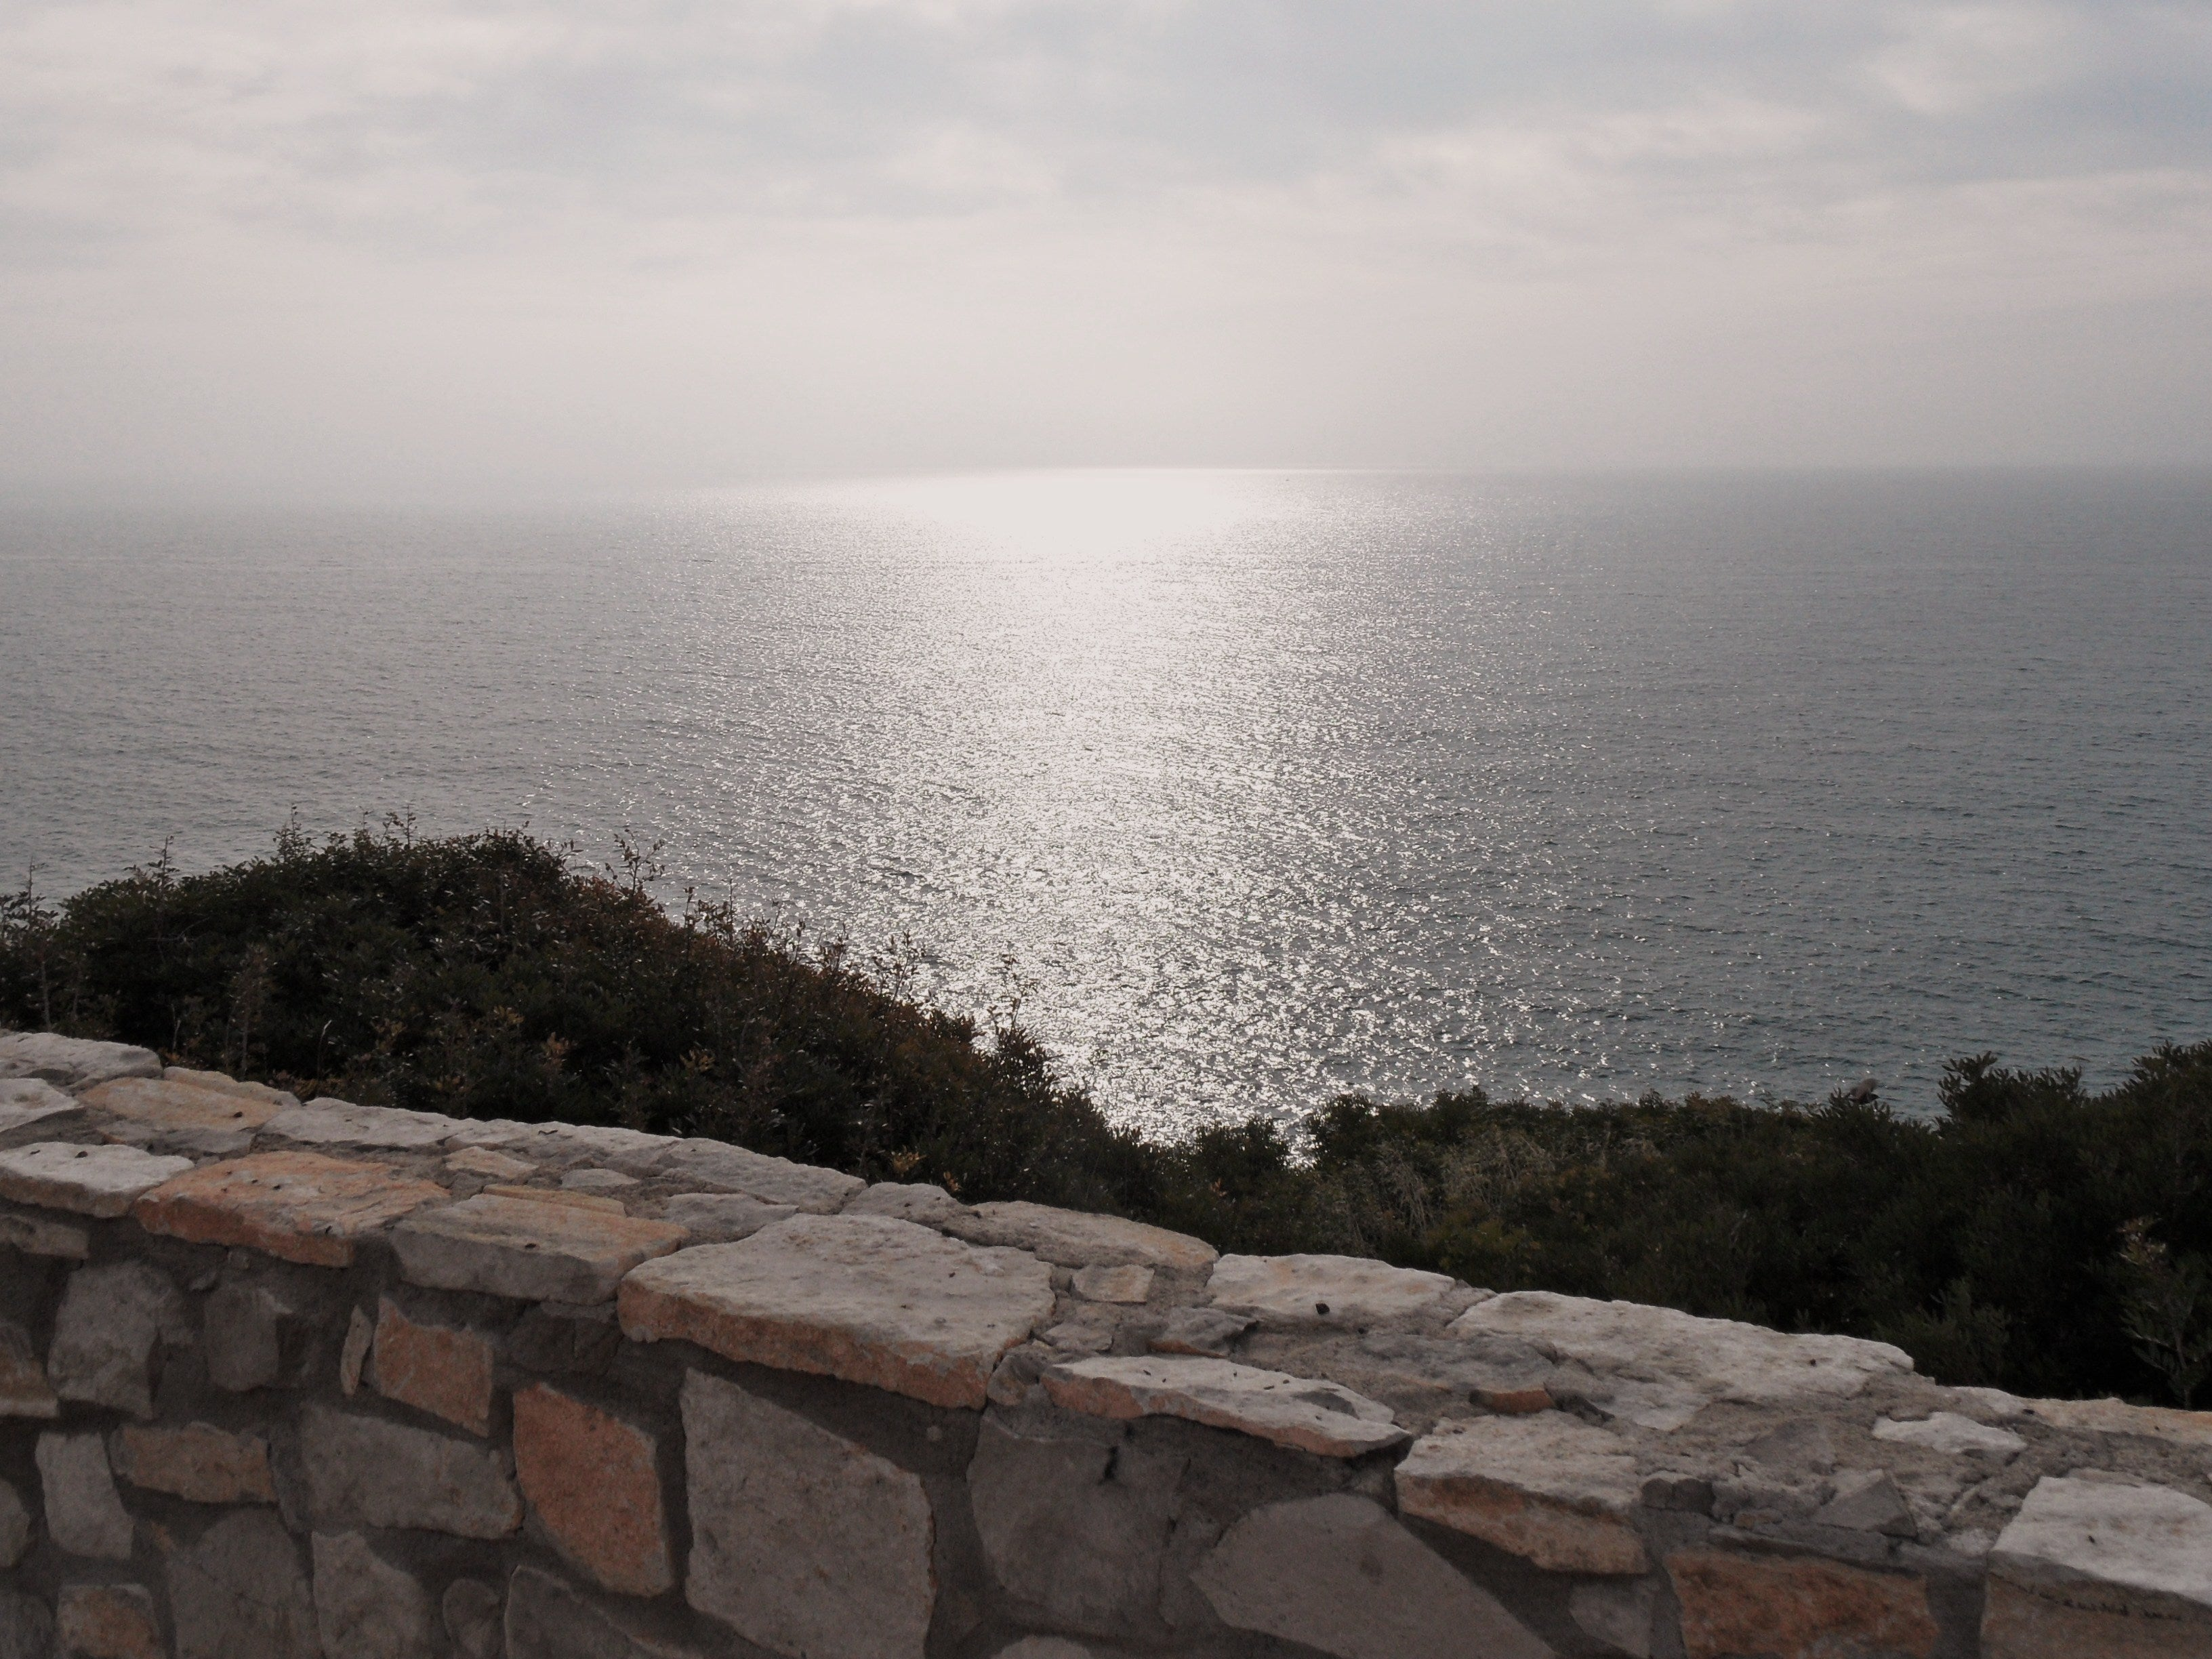 Viewpoints of El Garraf